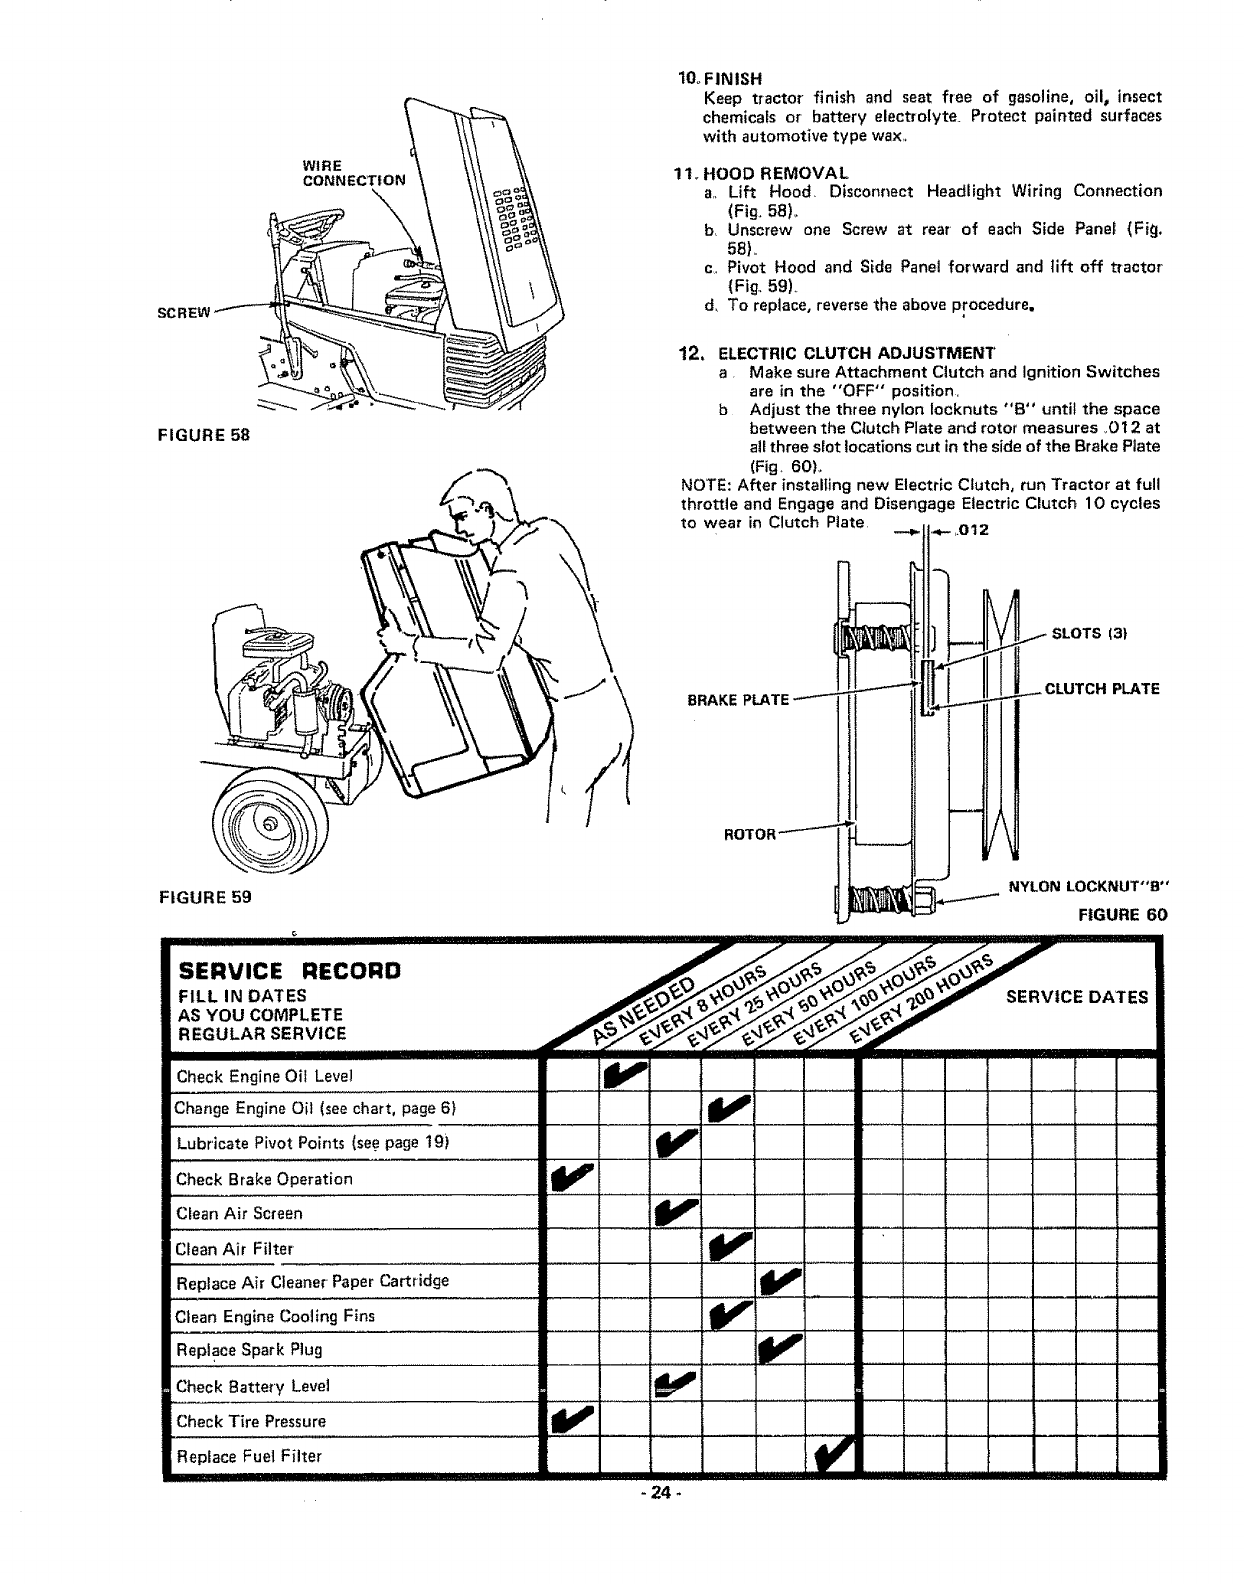 Craftsman 917255915 User Manual 6 Speed Garden Tractor Manuals And The Distance Between Connection Of Discharge Side Ammeter Guides L1003361